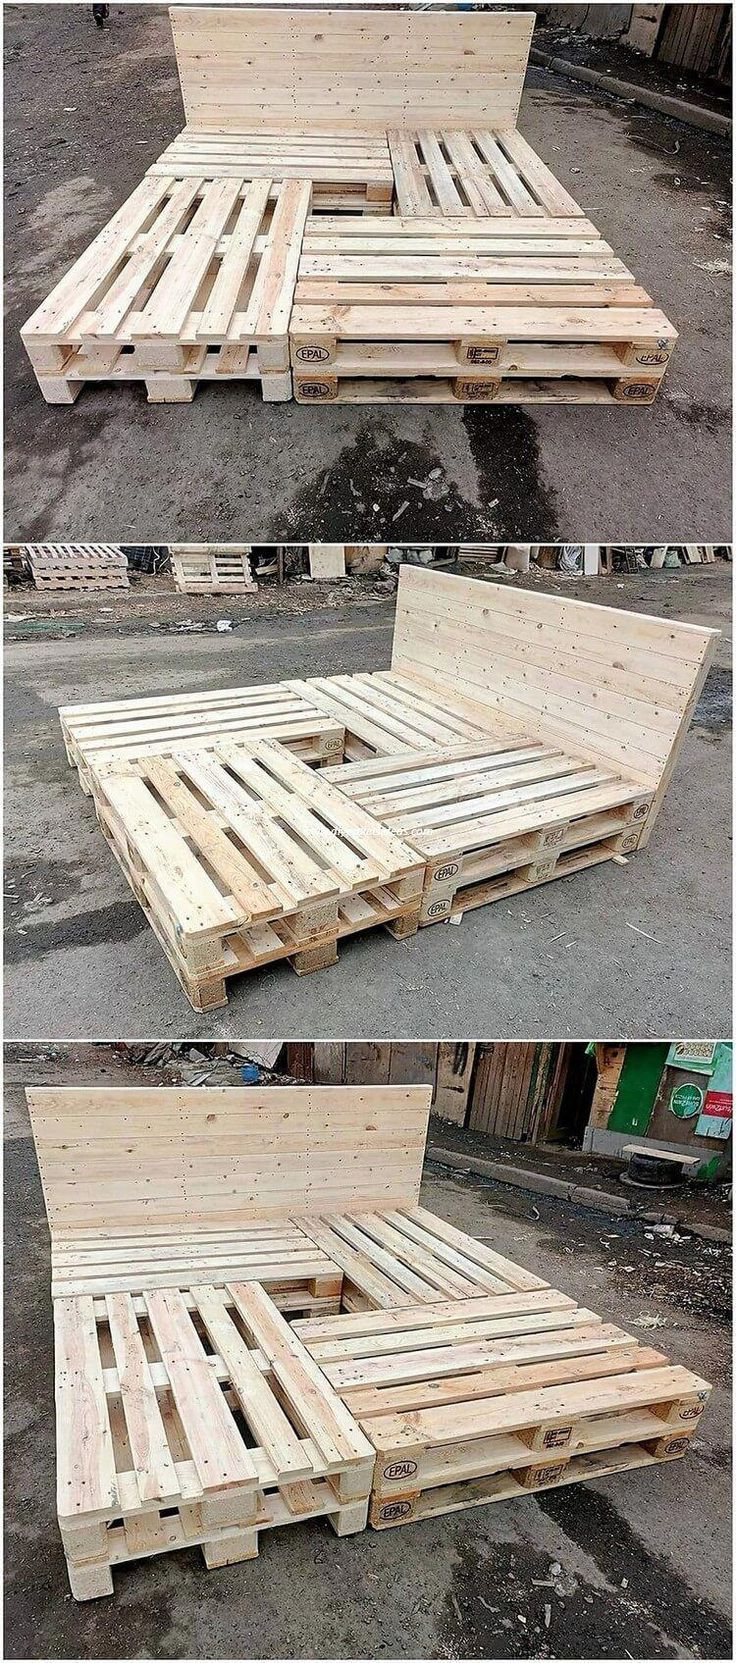 Bed Frame Full With Headboard Bed Frames No Box Spring Needed Queen Furnitureshop Furnituremalaysia Be Pallet Furniture Bedroom Diy Pallet Bed Diy Bed Frame No box spring bed frame